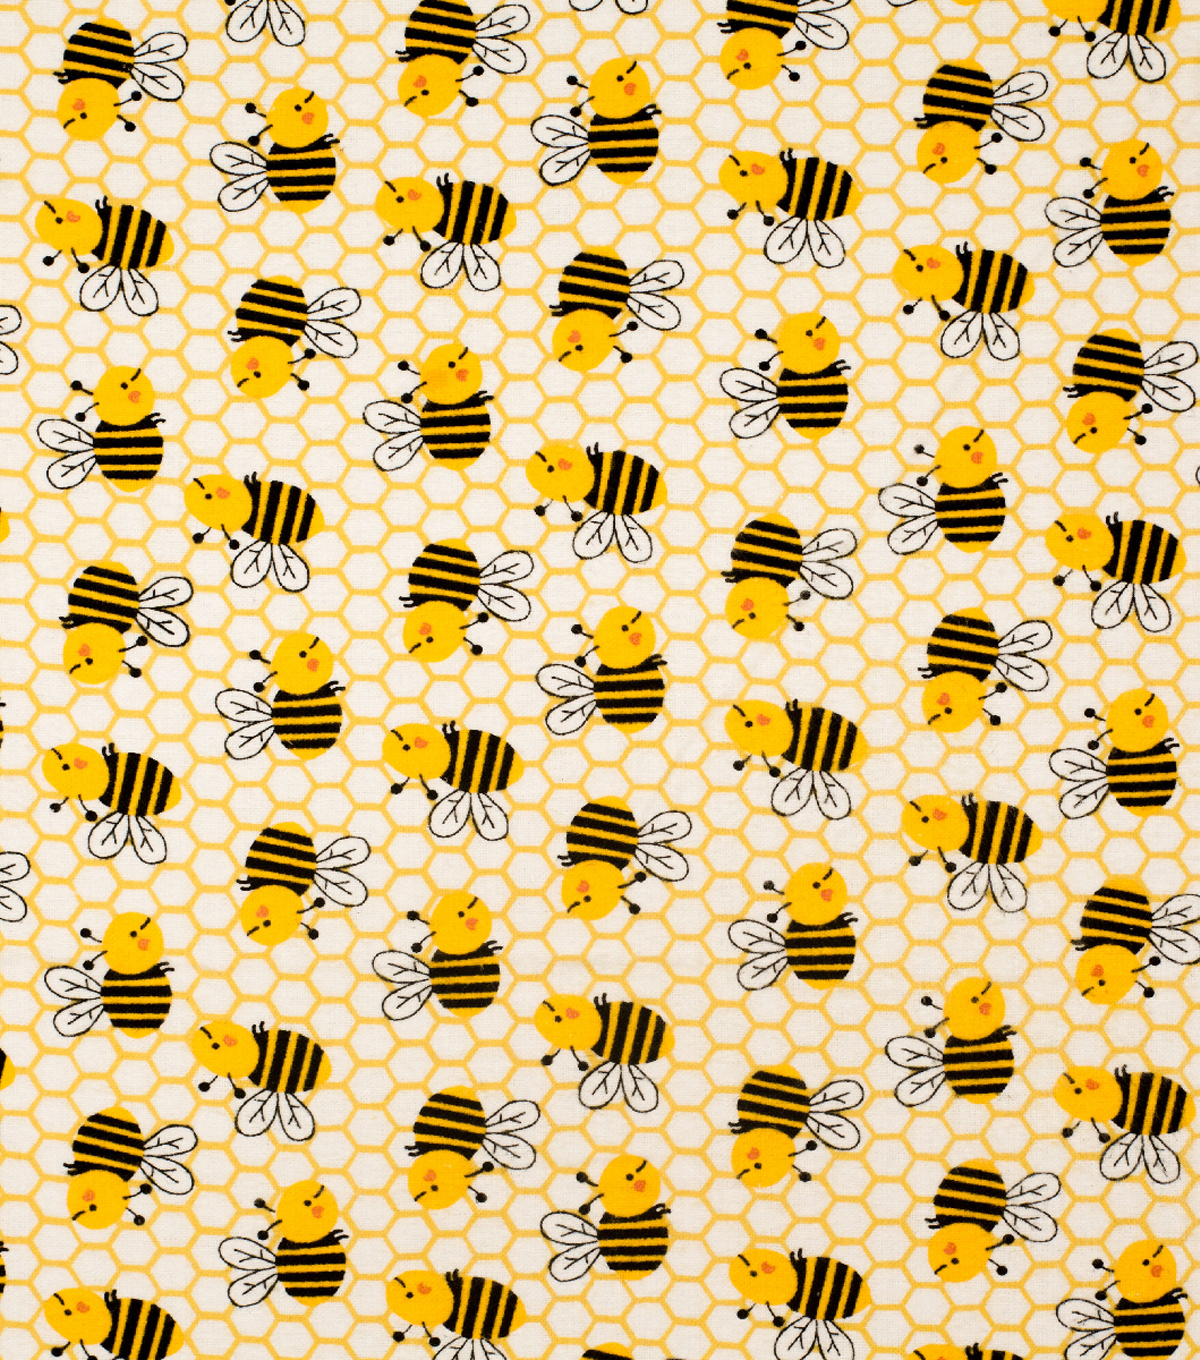 Super Snuggle Flannel Fabric-Honeycomb Bee